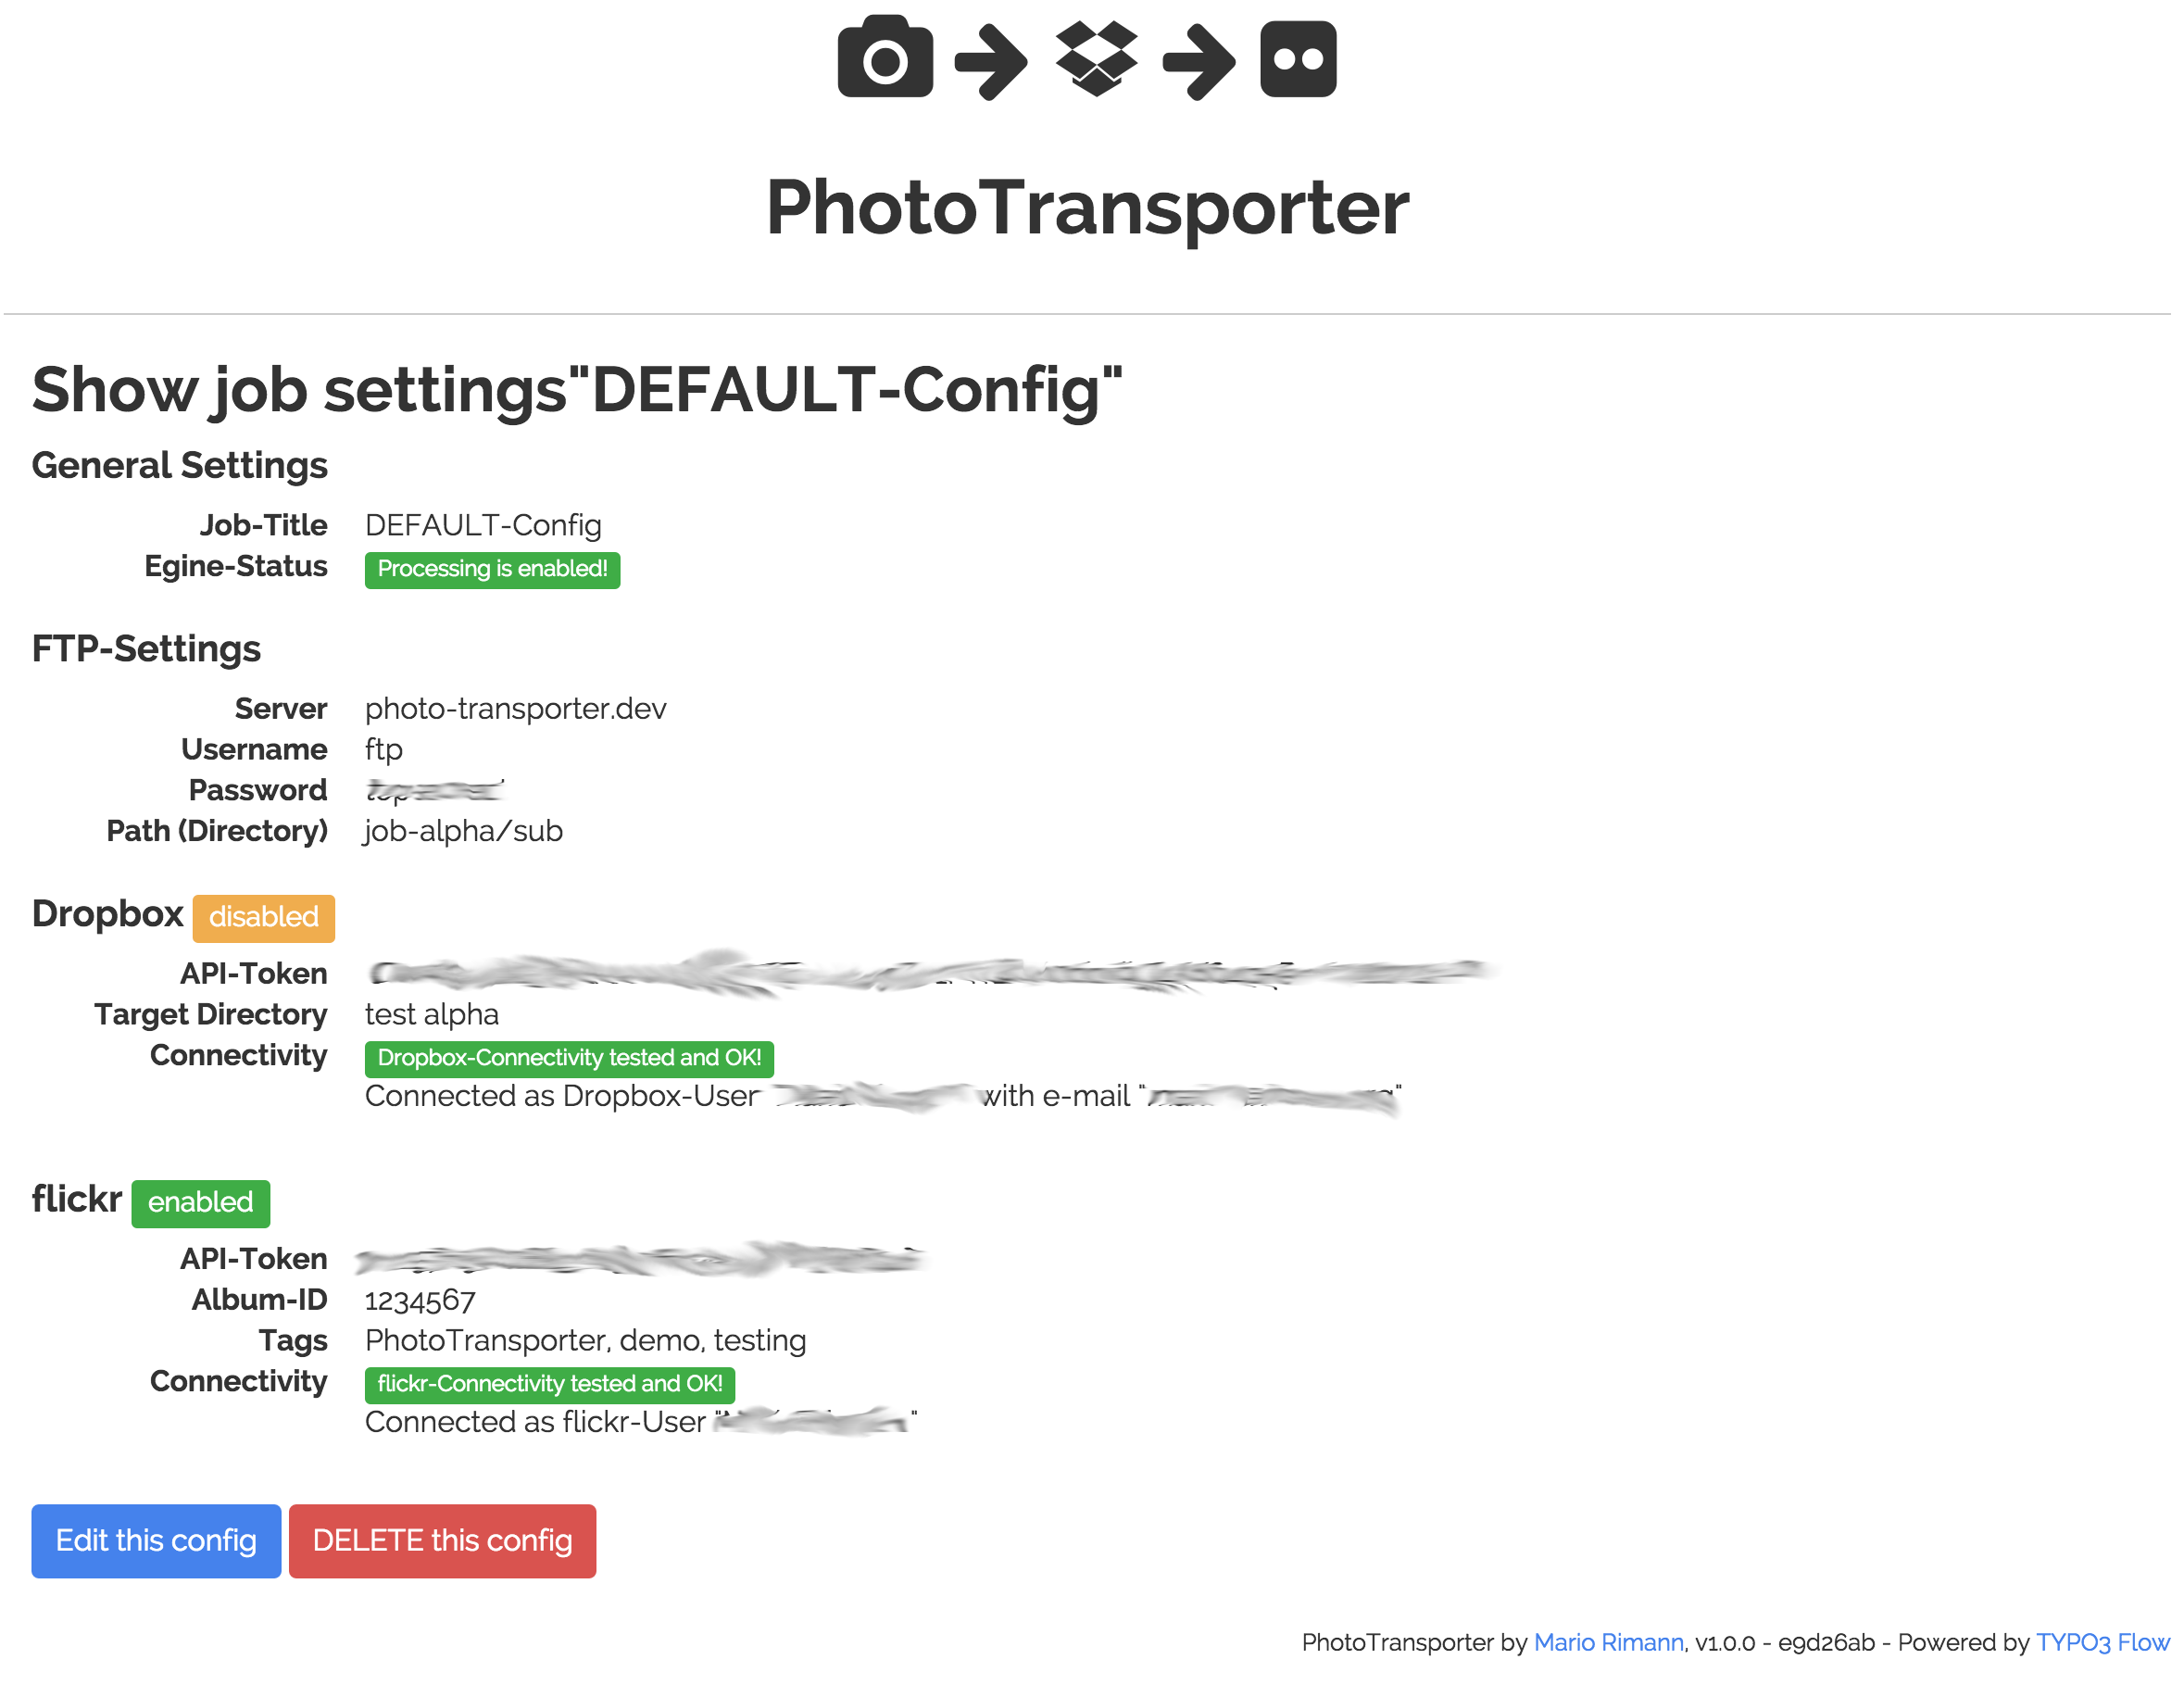 PhotoTransporter settings view to configure a job.